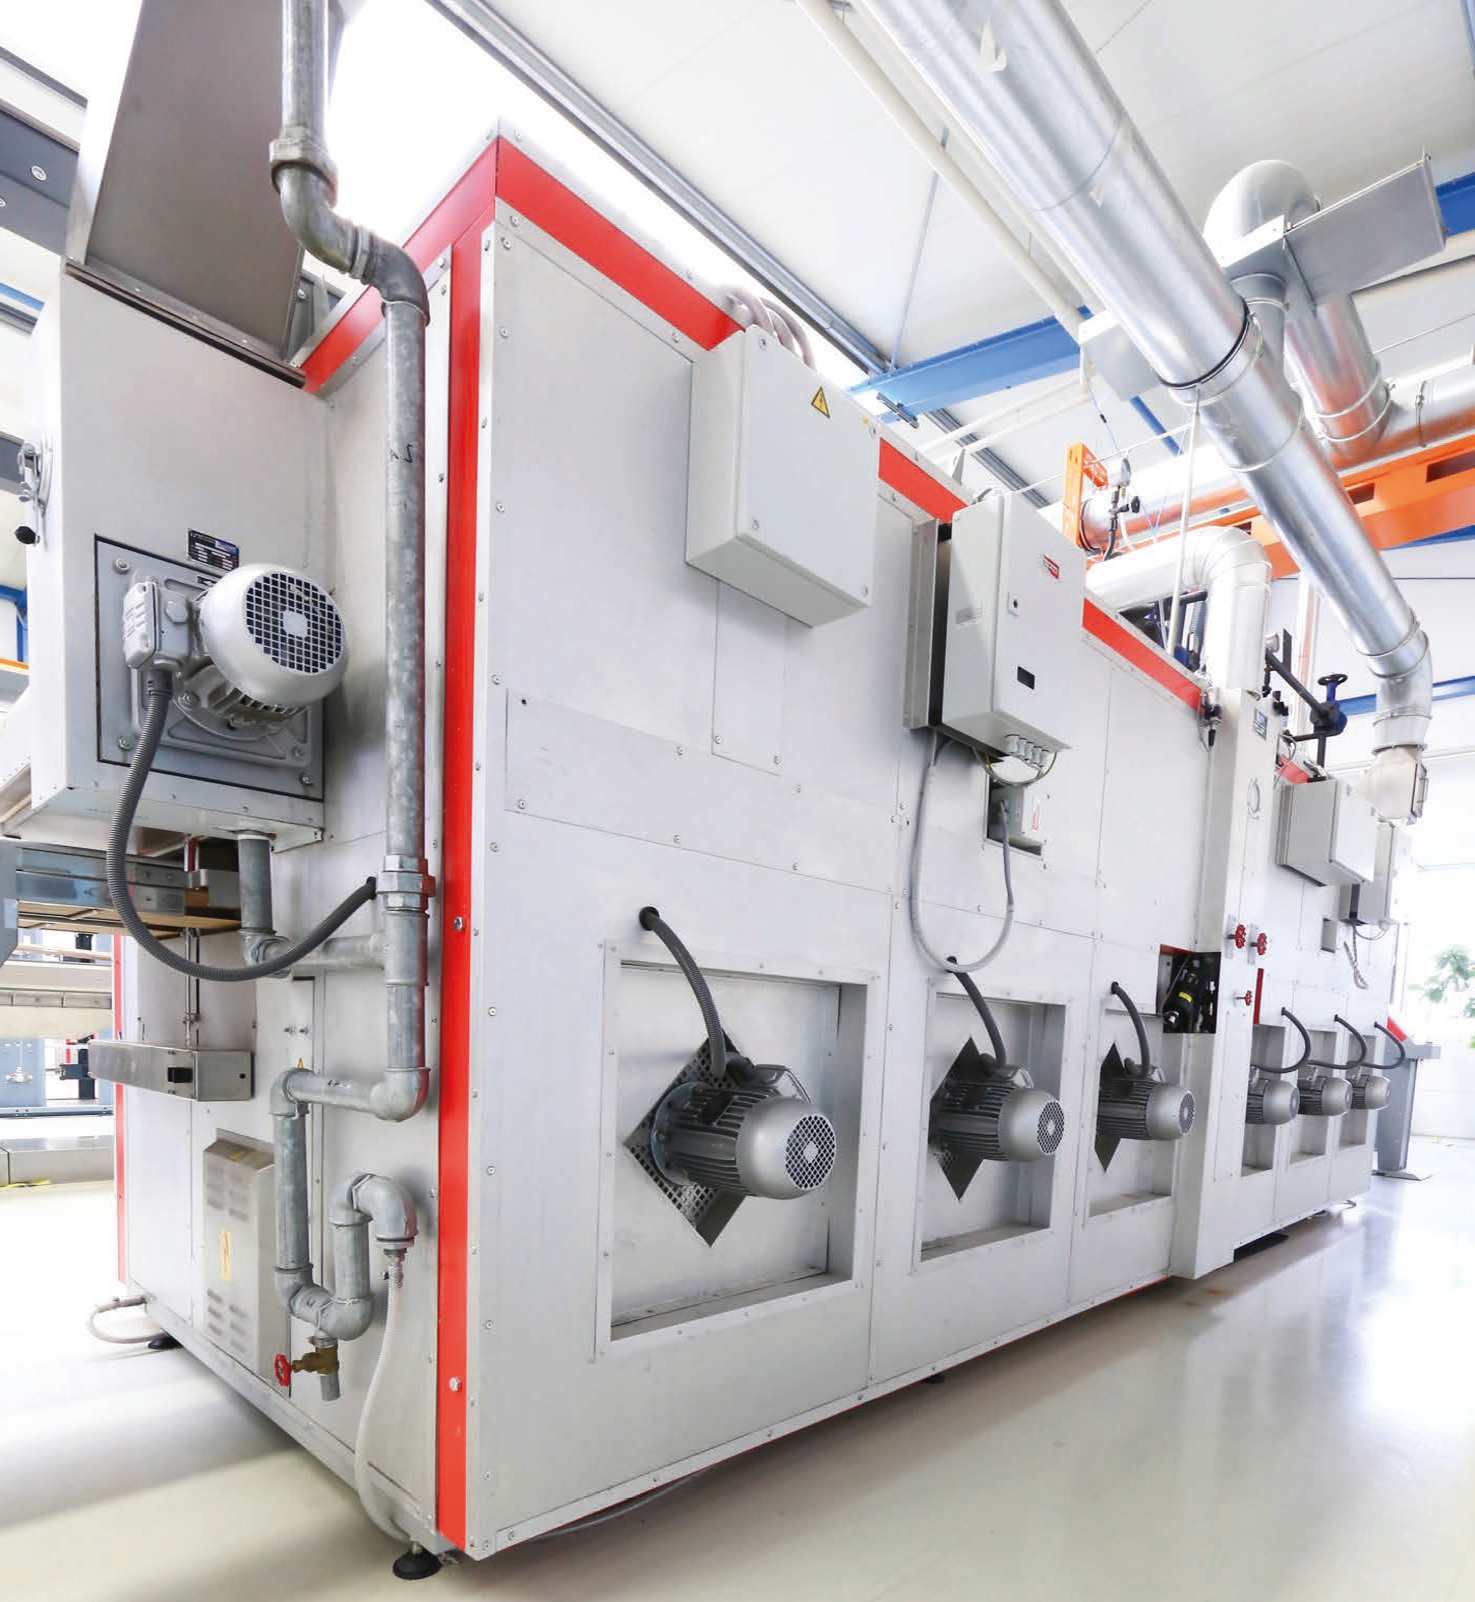 A.T.E. to provide high quality carpet heat setting machinery through tie up with Power-Heat-Set, Germany